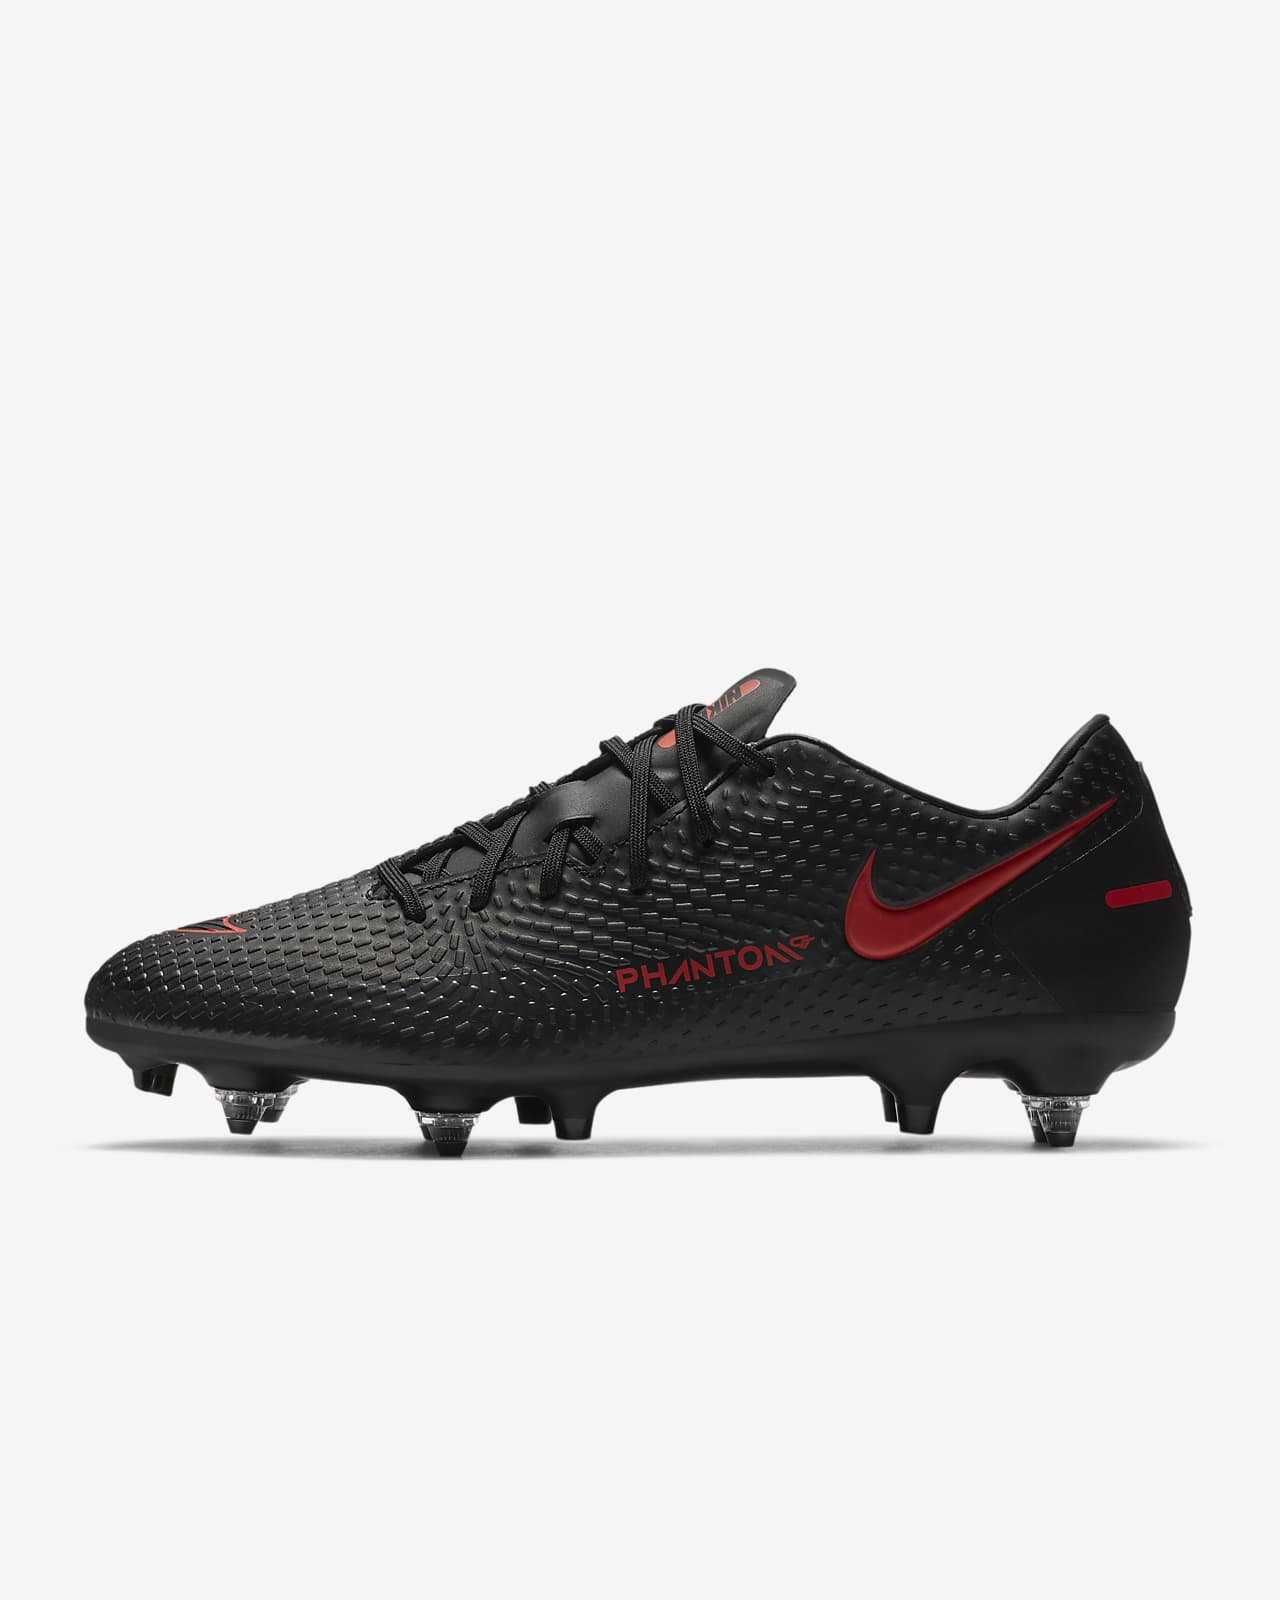 Nike Phantom GT Academy SG-Pro AC Soft-Ground Football Boot